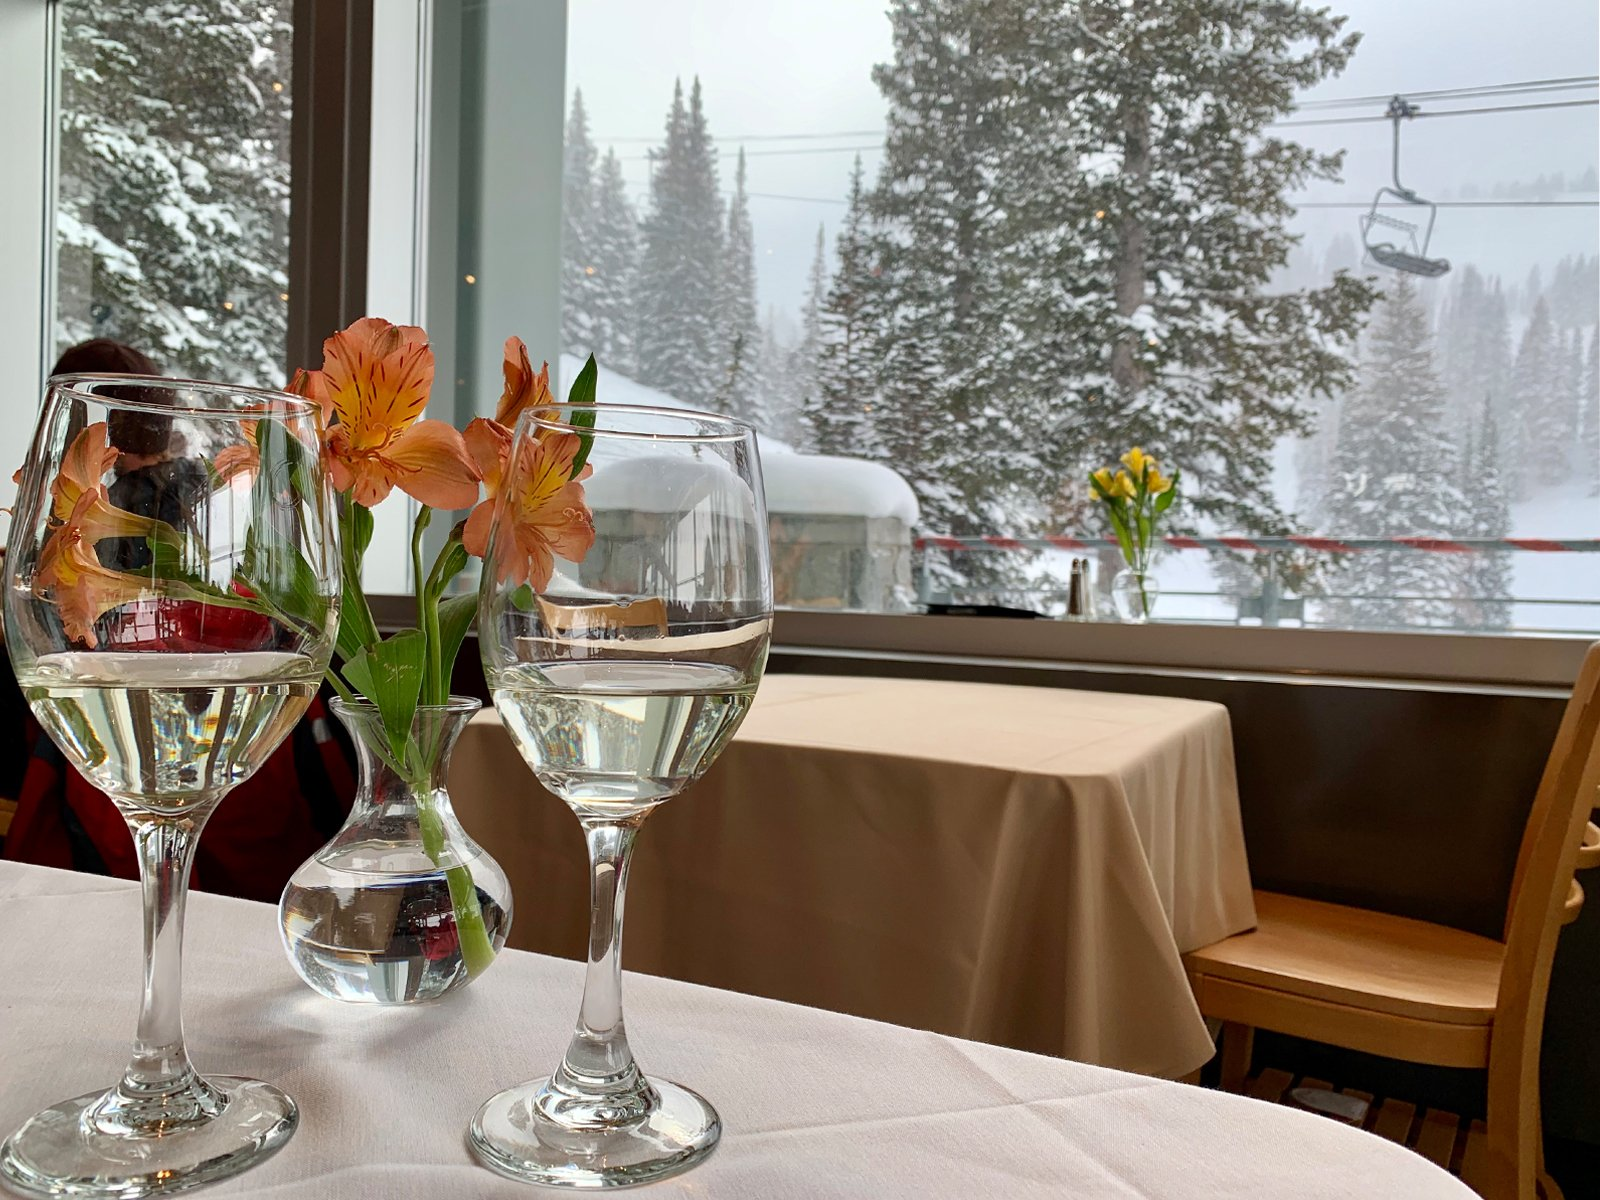 wine glasses on a table at collins grill at alta ski resort